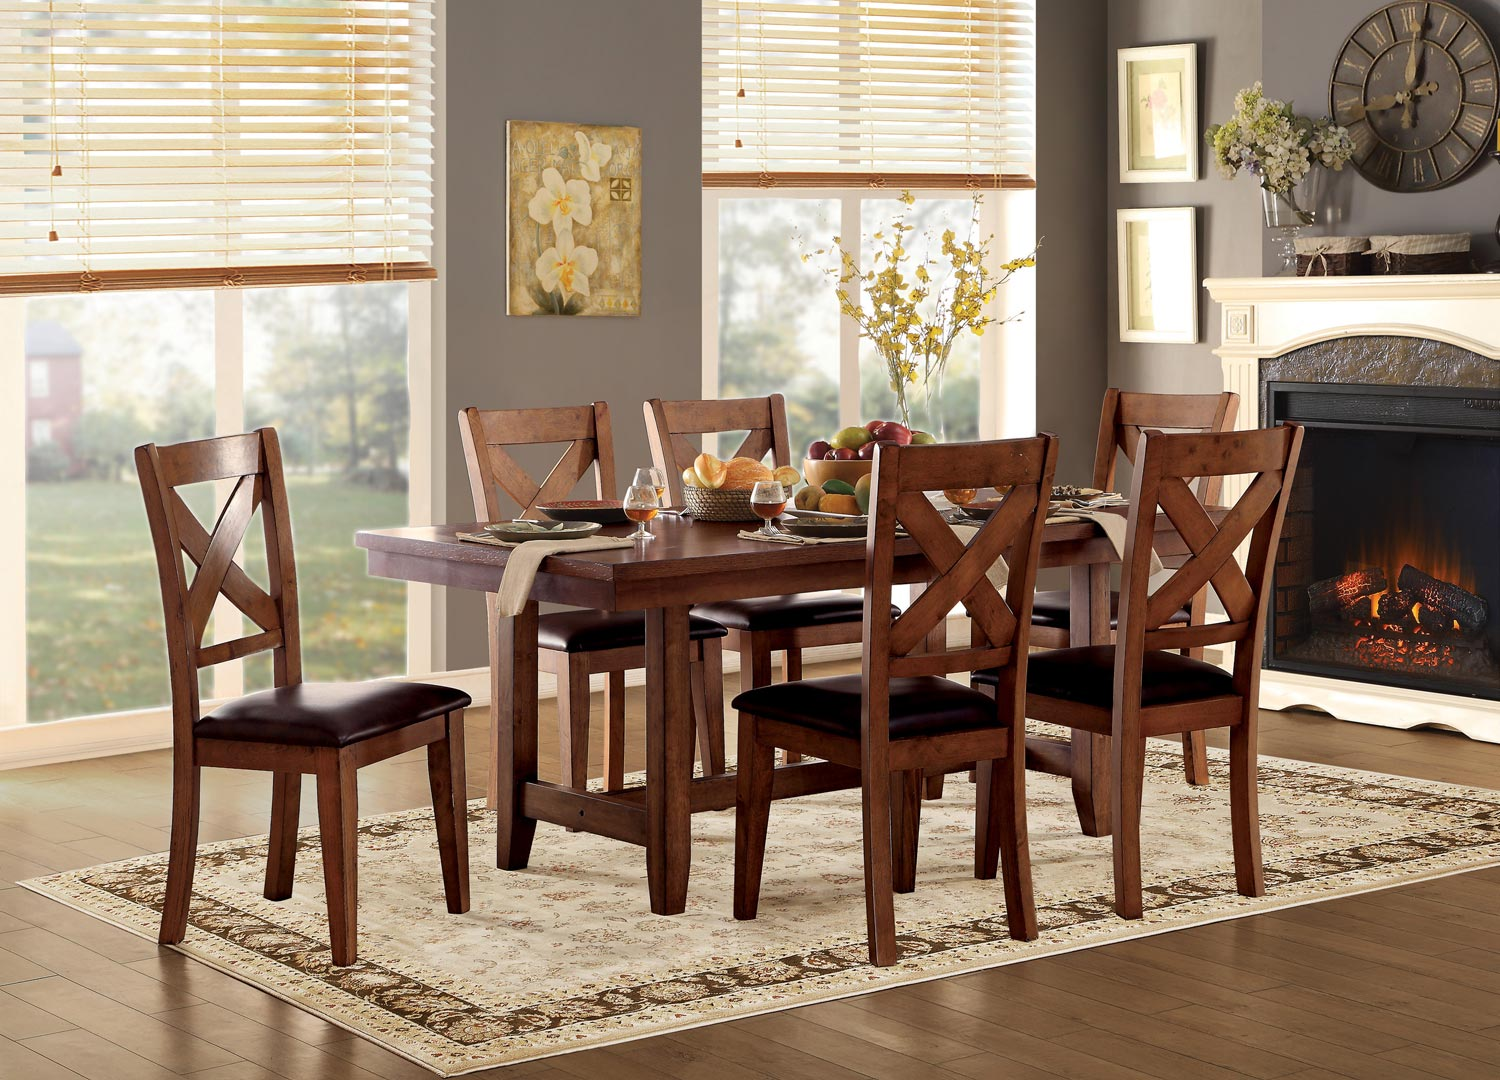 Homelegance Burrillville Trestle Dining Set - Oak